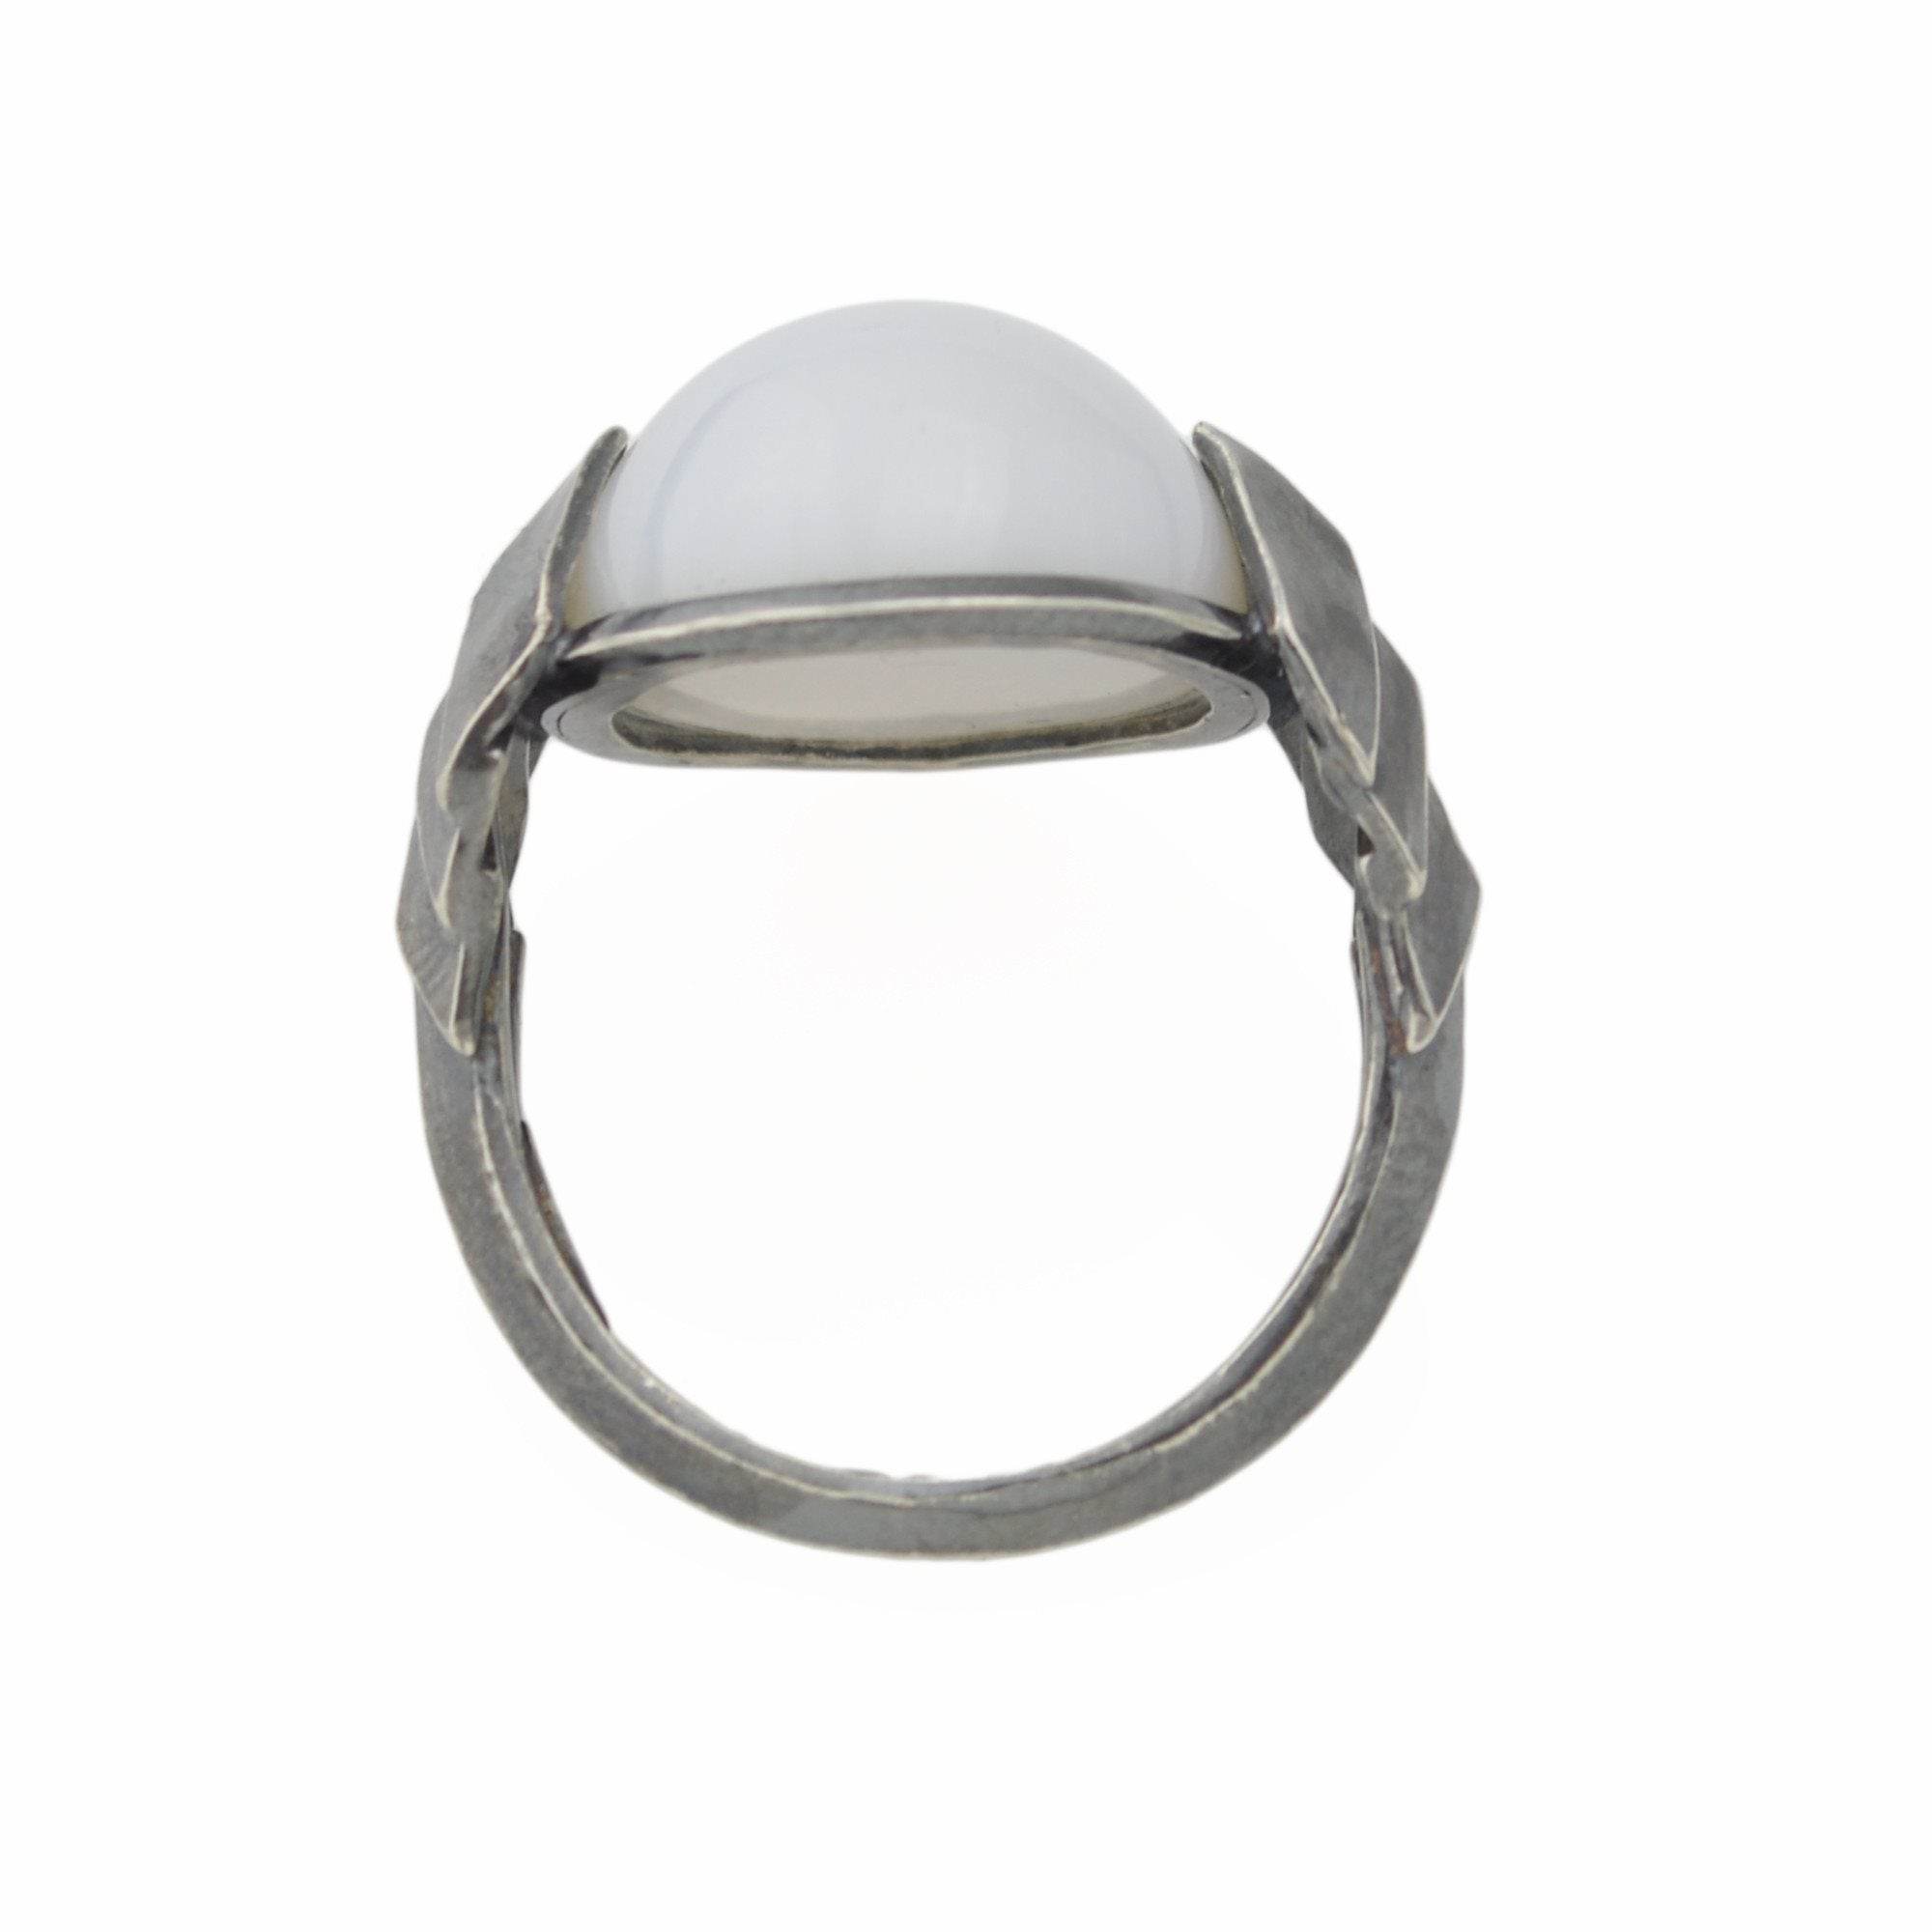 Metropolis Chevron Ring in darkened sterling silver with White Agatized Wood from Australia